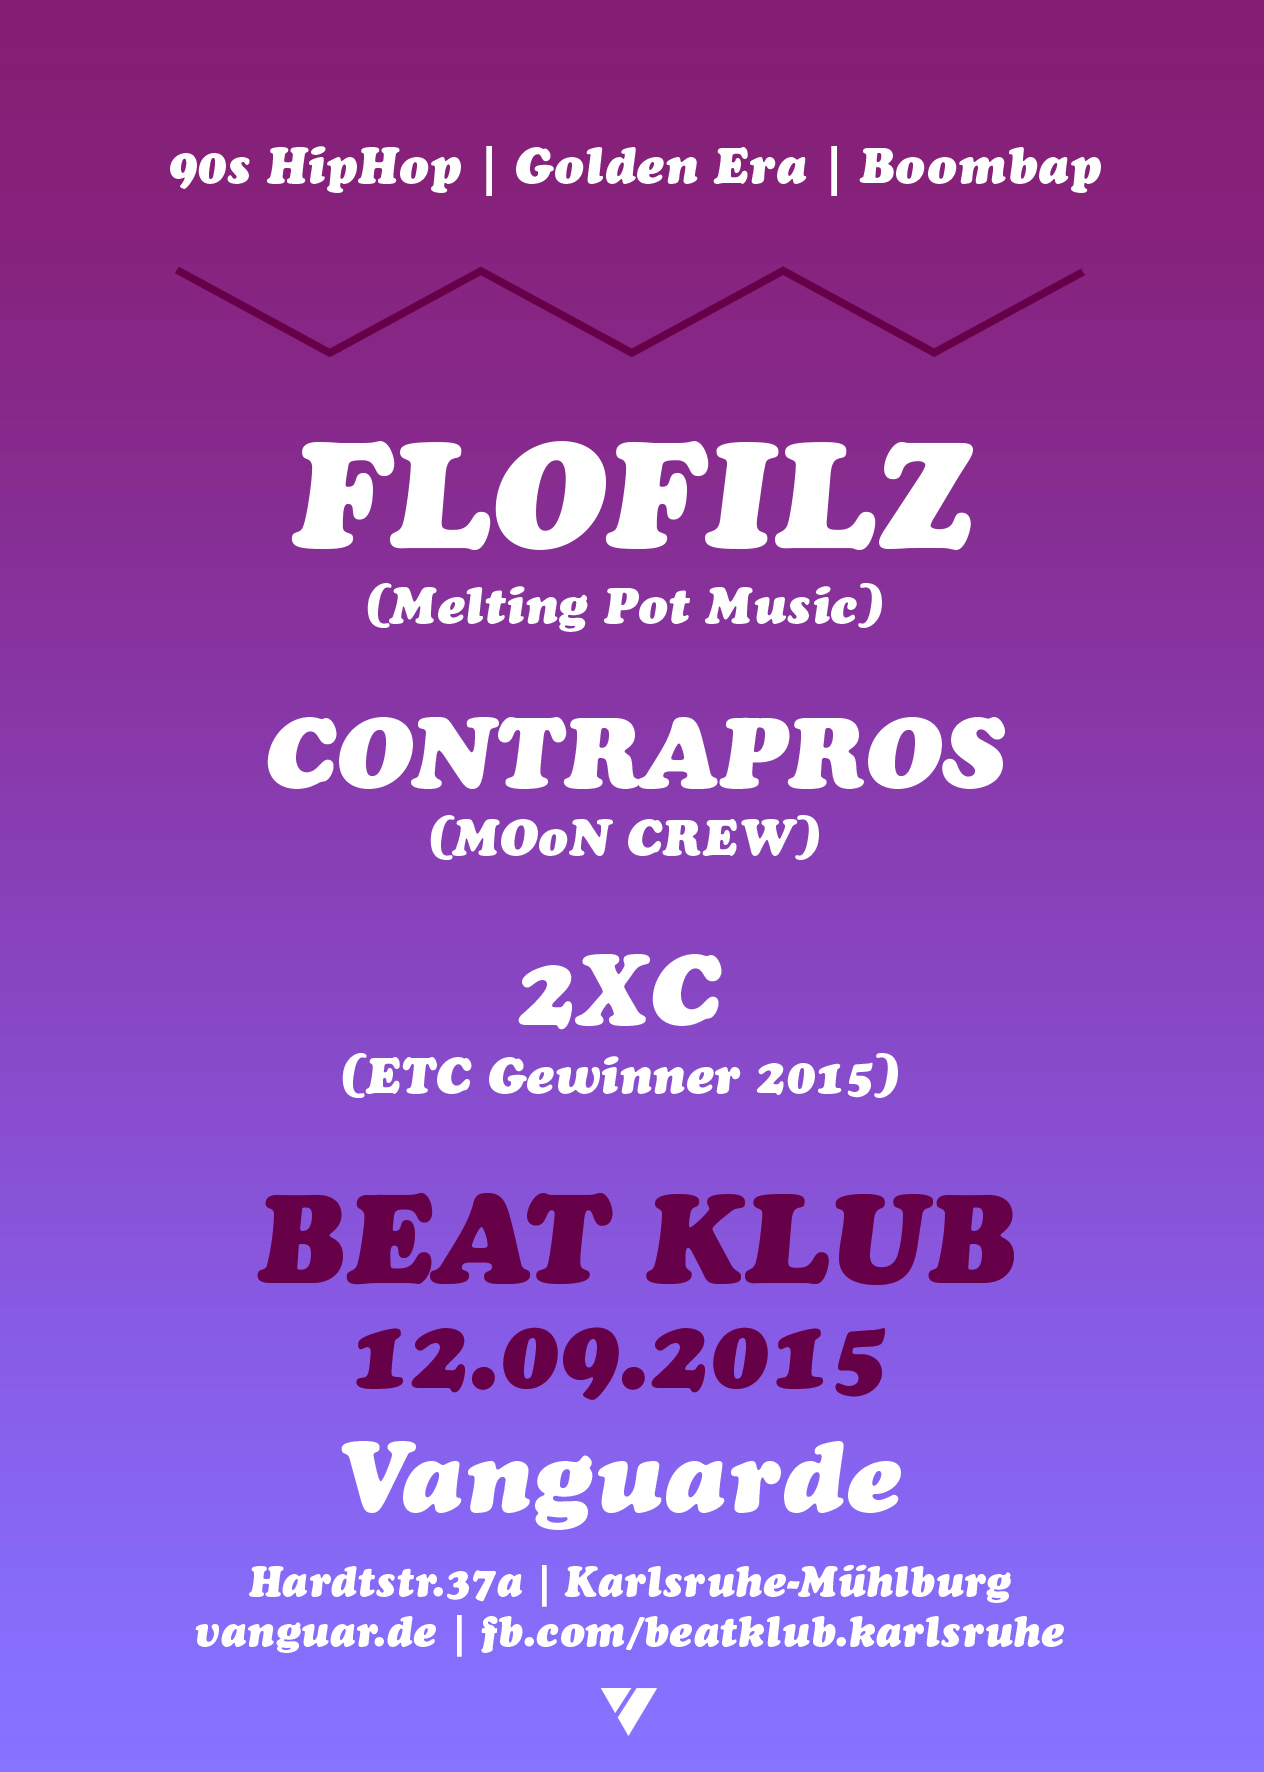 12.09.2015 | BEAT KLUB #23 mit FLOFILZ (Melting Pot Music)